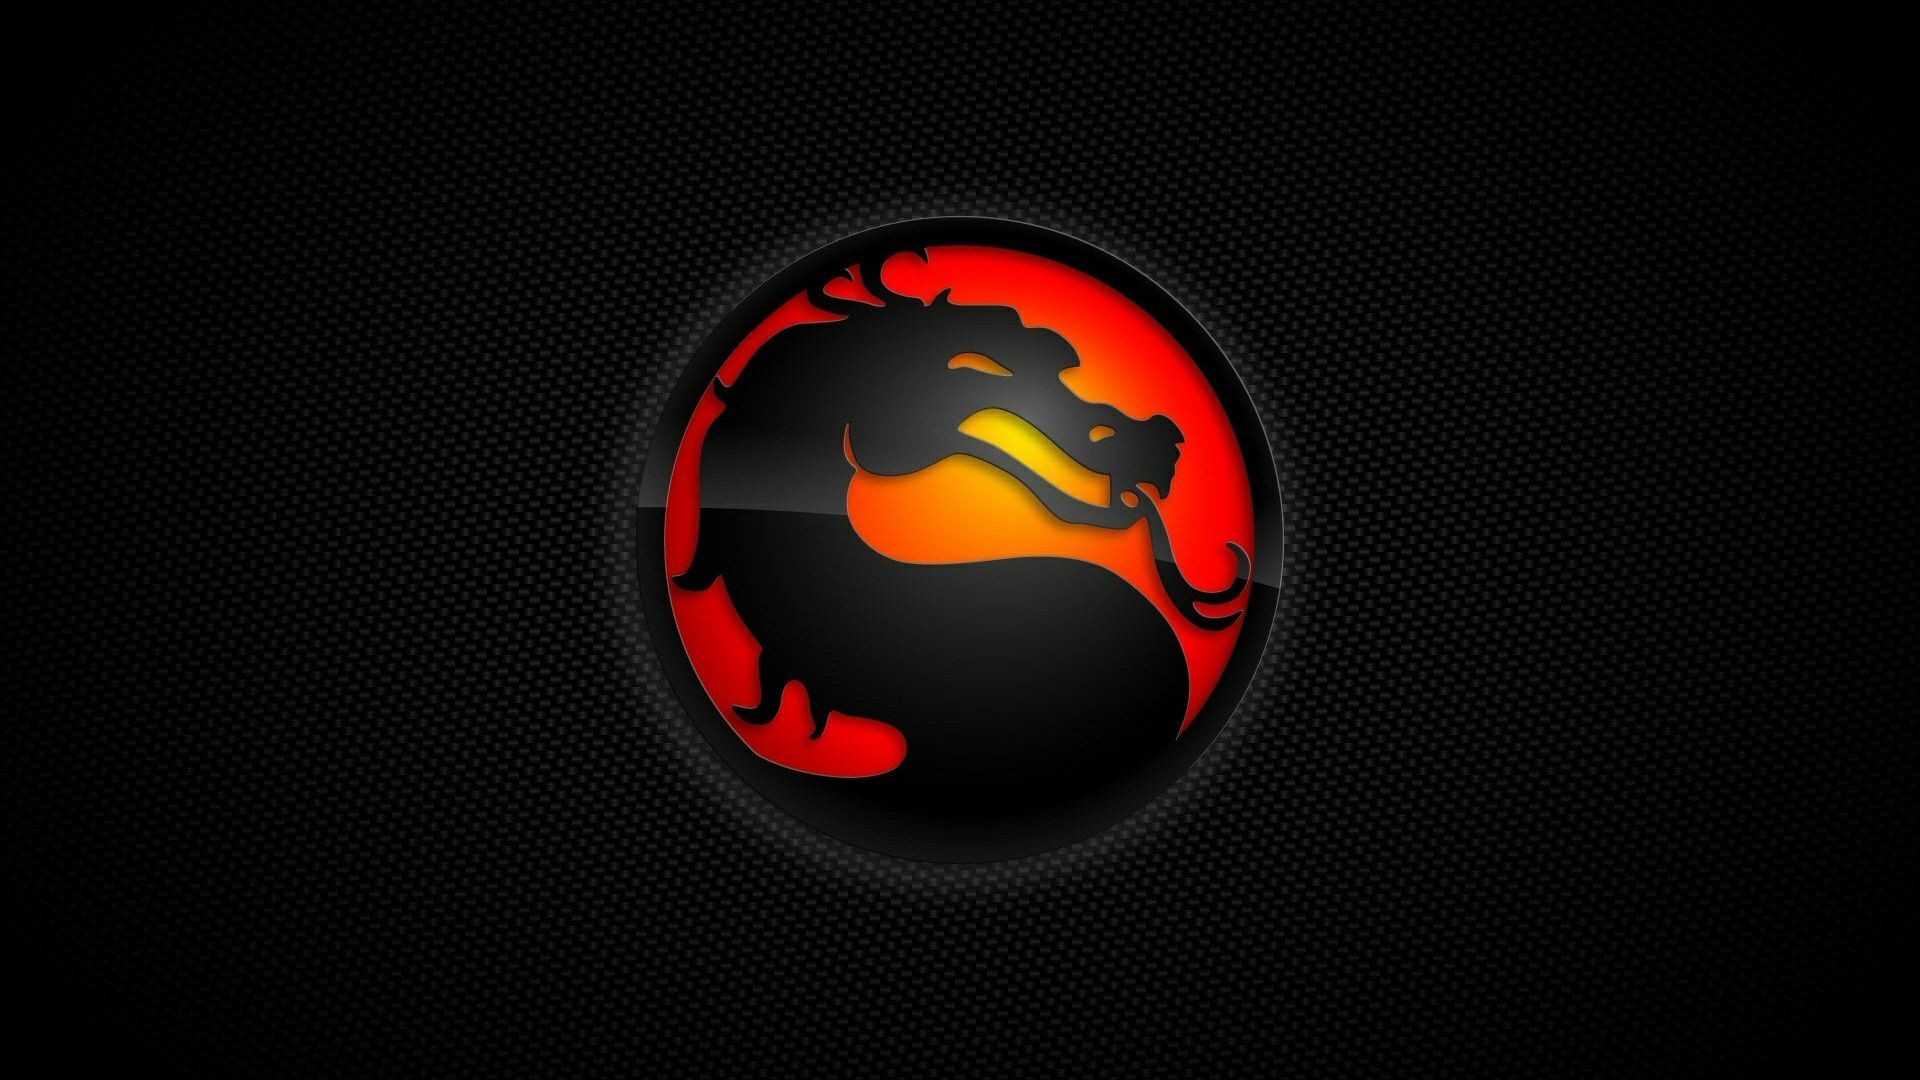 Abstract Dragon Wallpaper 58 Images